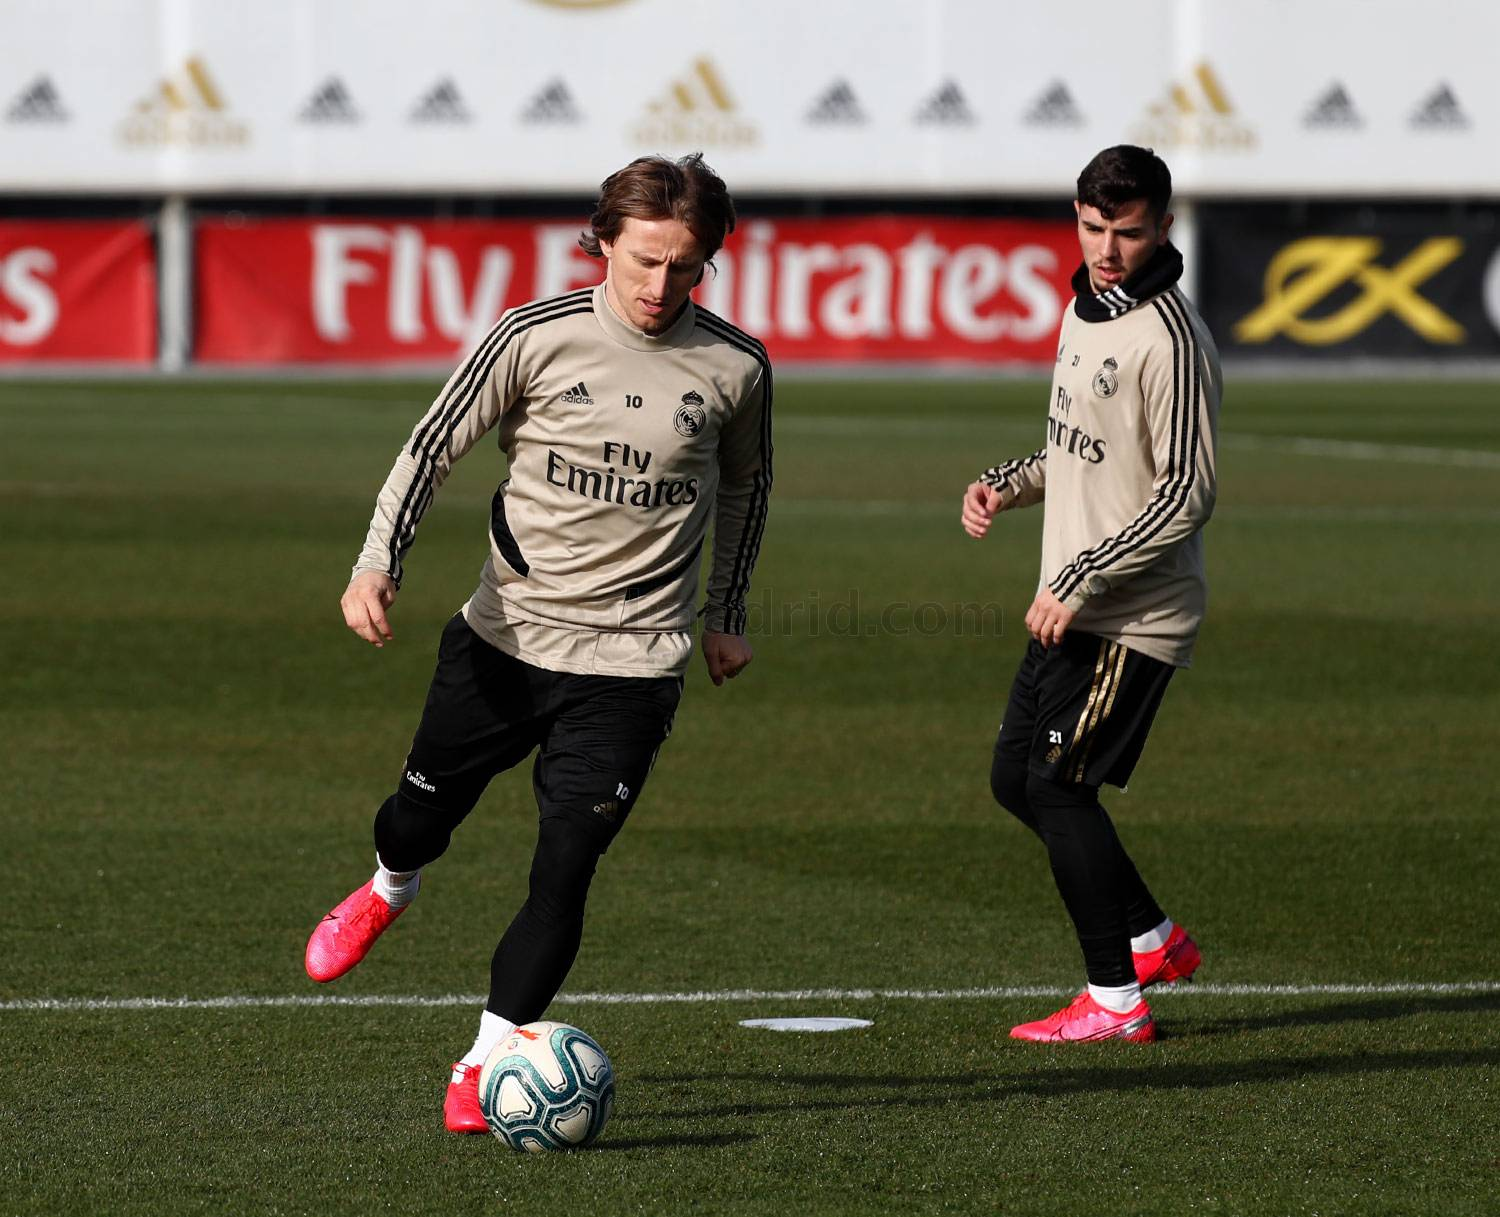 Real Madrid - Entrenamiento del Real Madrid  - 23-01-2020